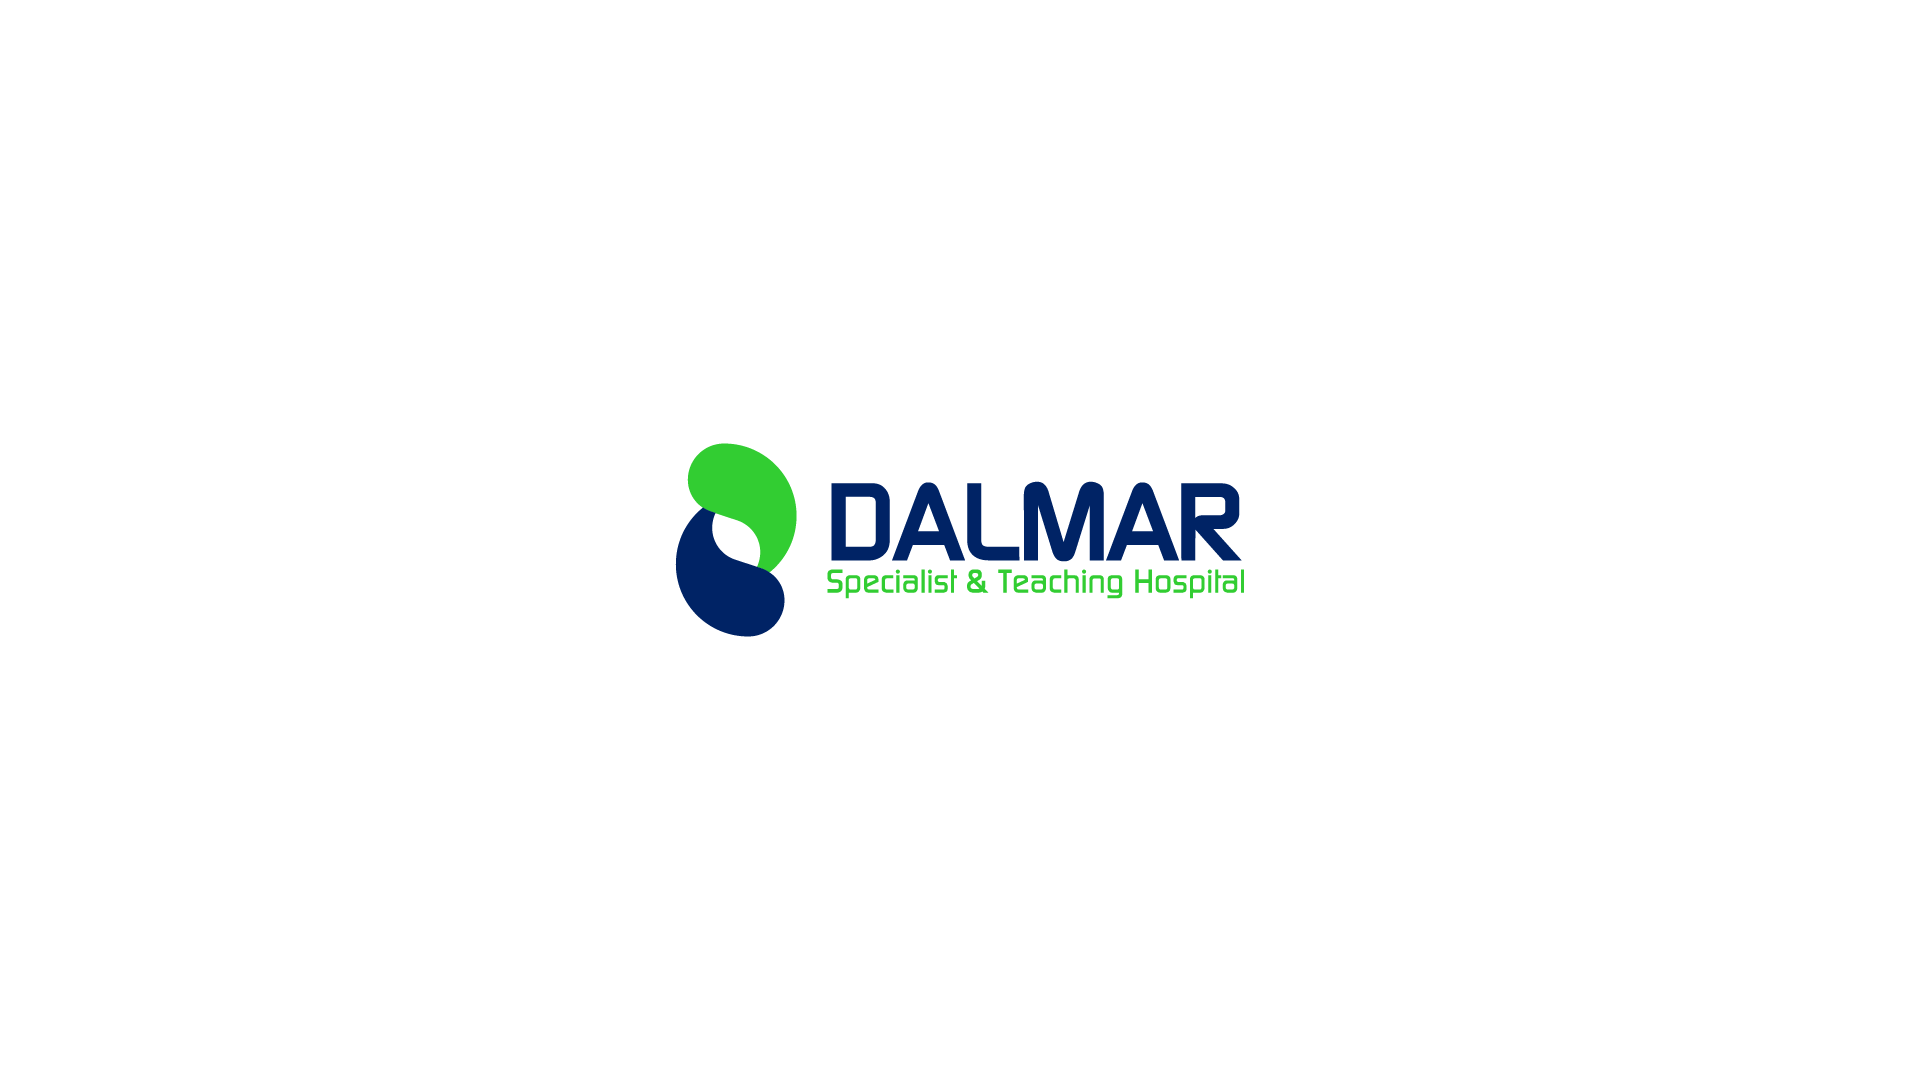 Dalmar Specialists and Teaching Hospital